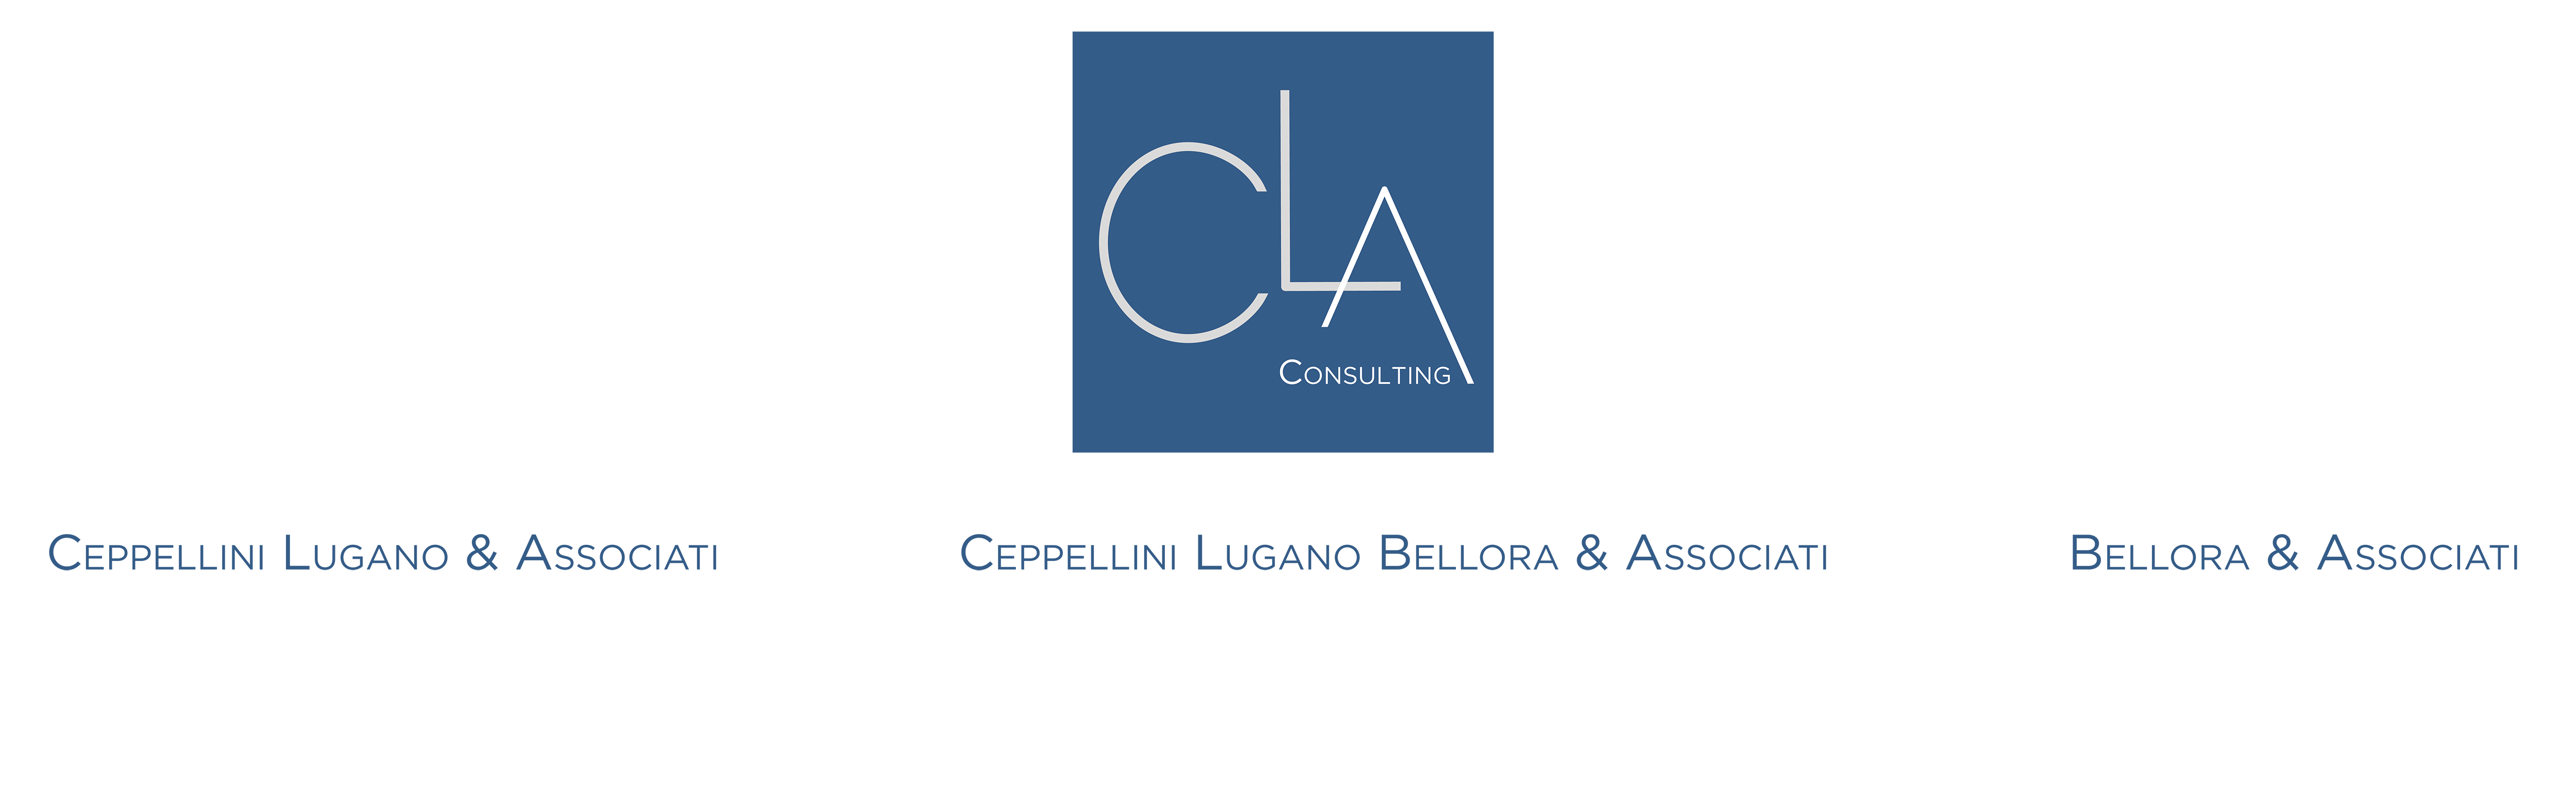 CLA Consulting